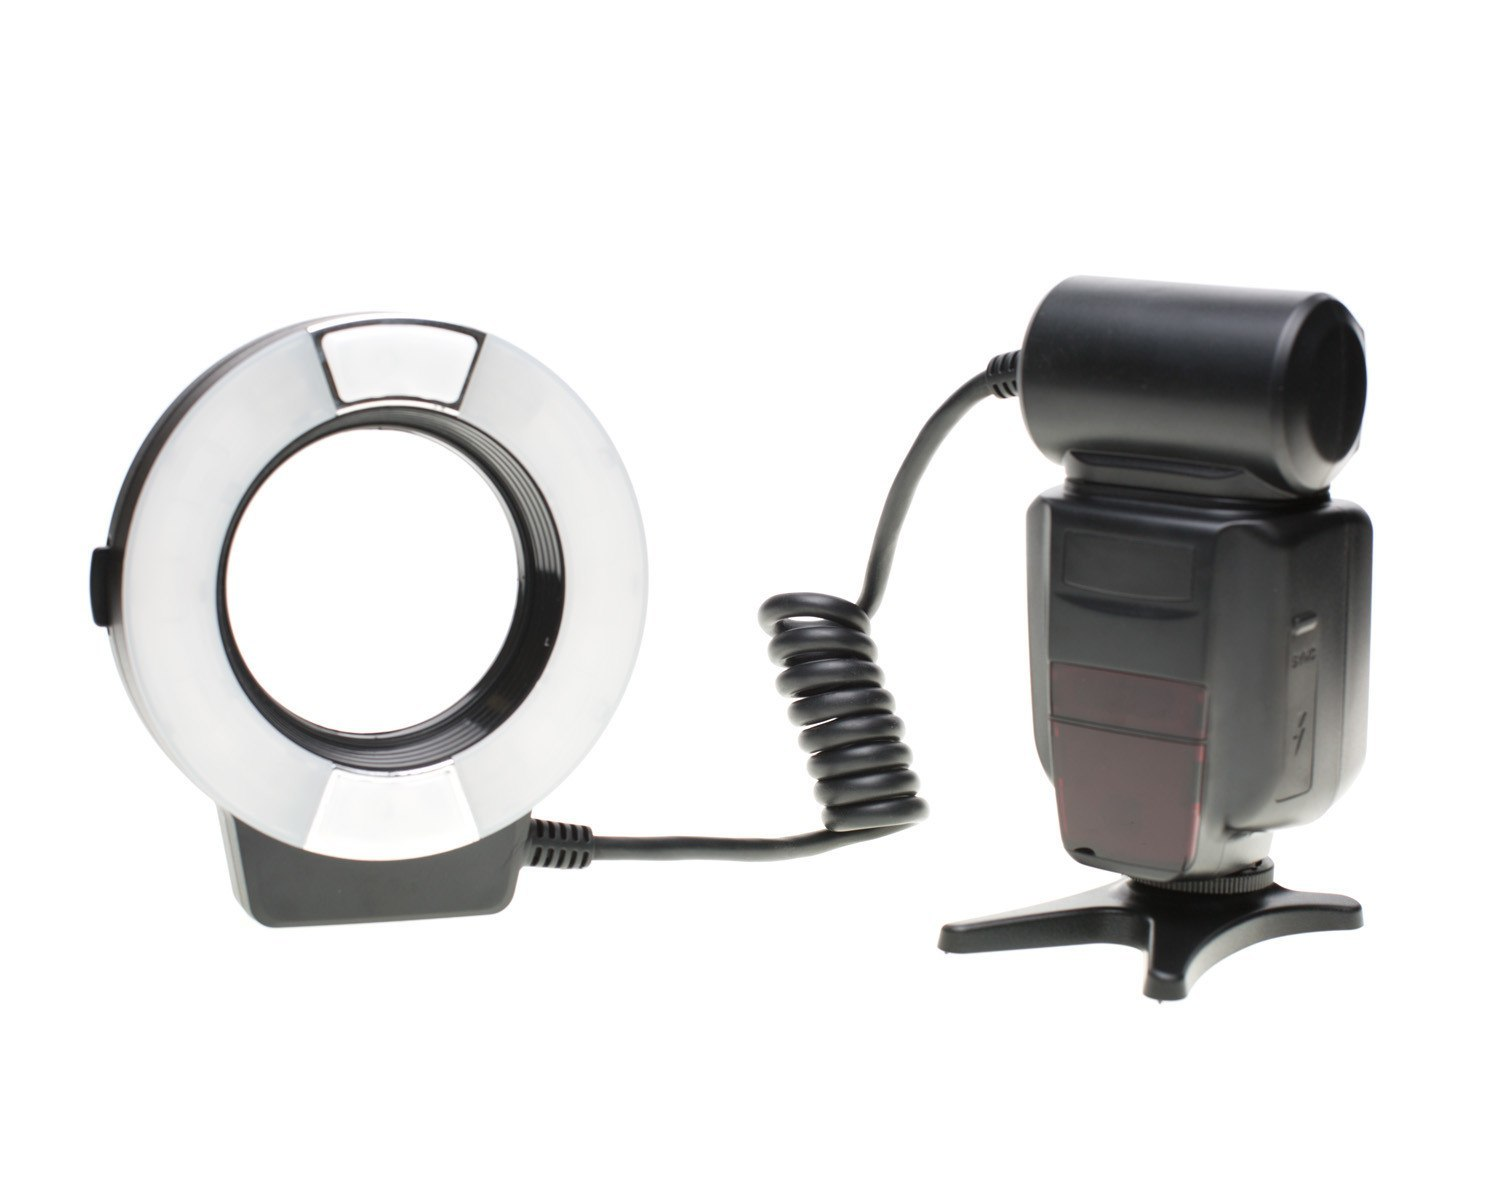 StudioPRO TTL Macro Ring Flash Light for Canon -  - 1